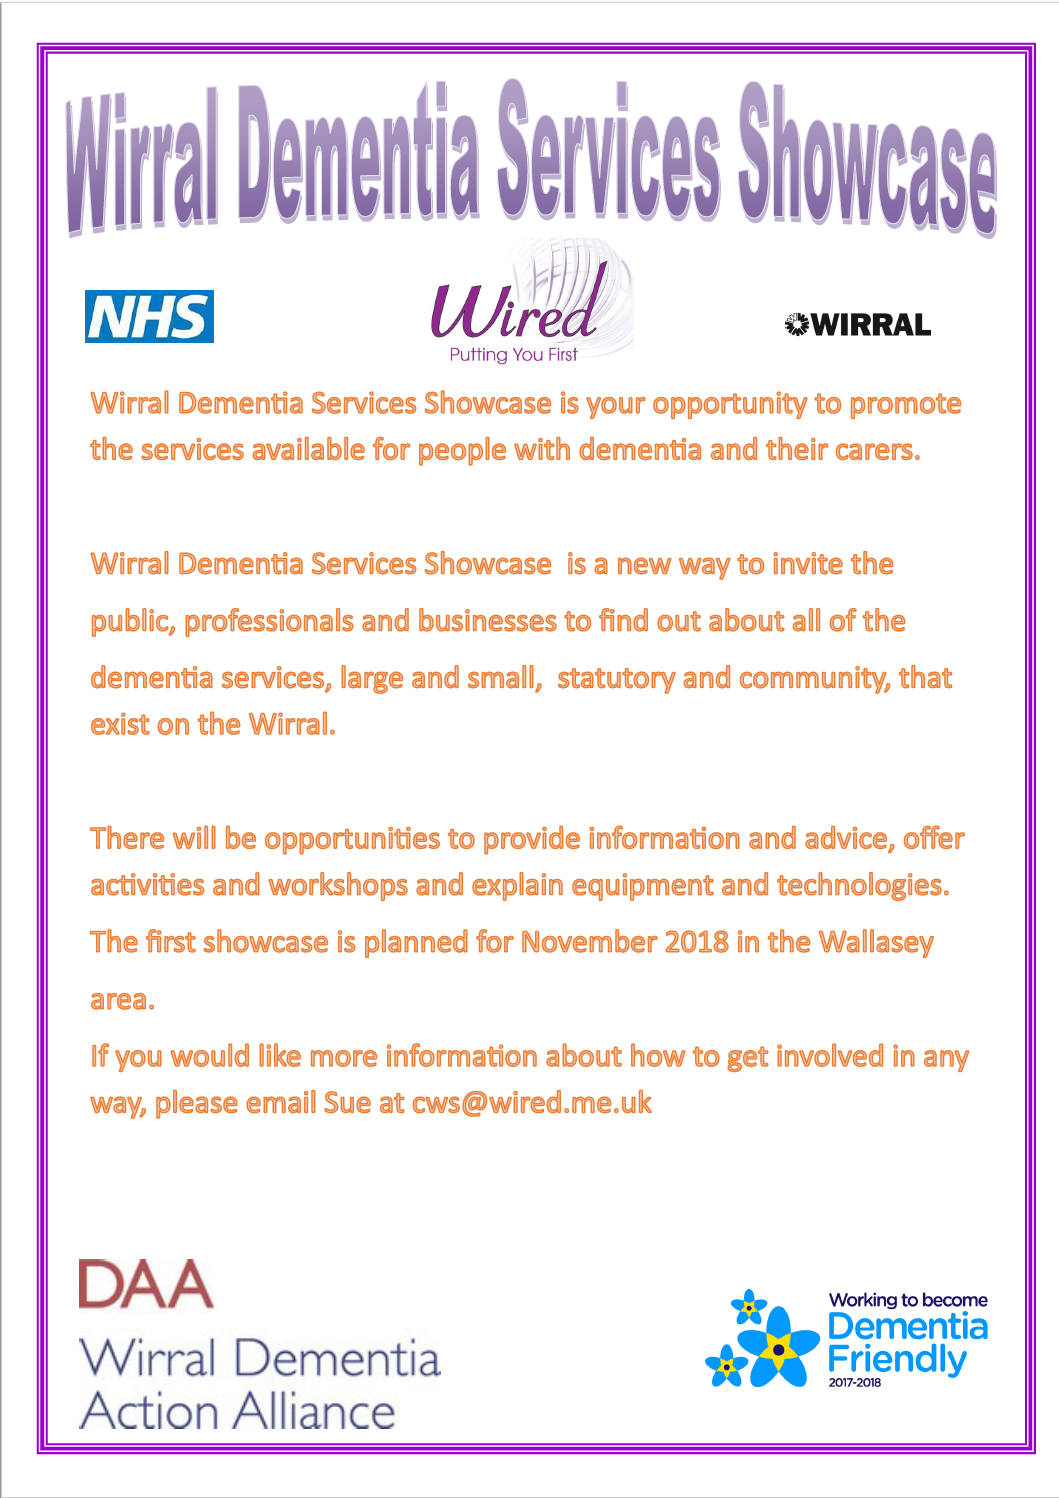 Dementia Services Showcase